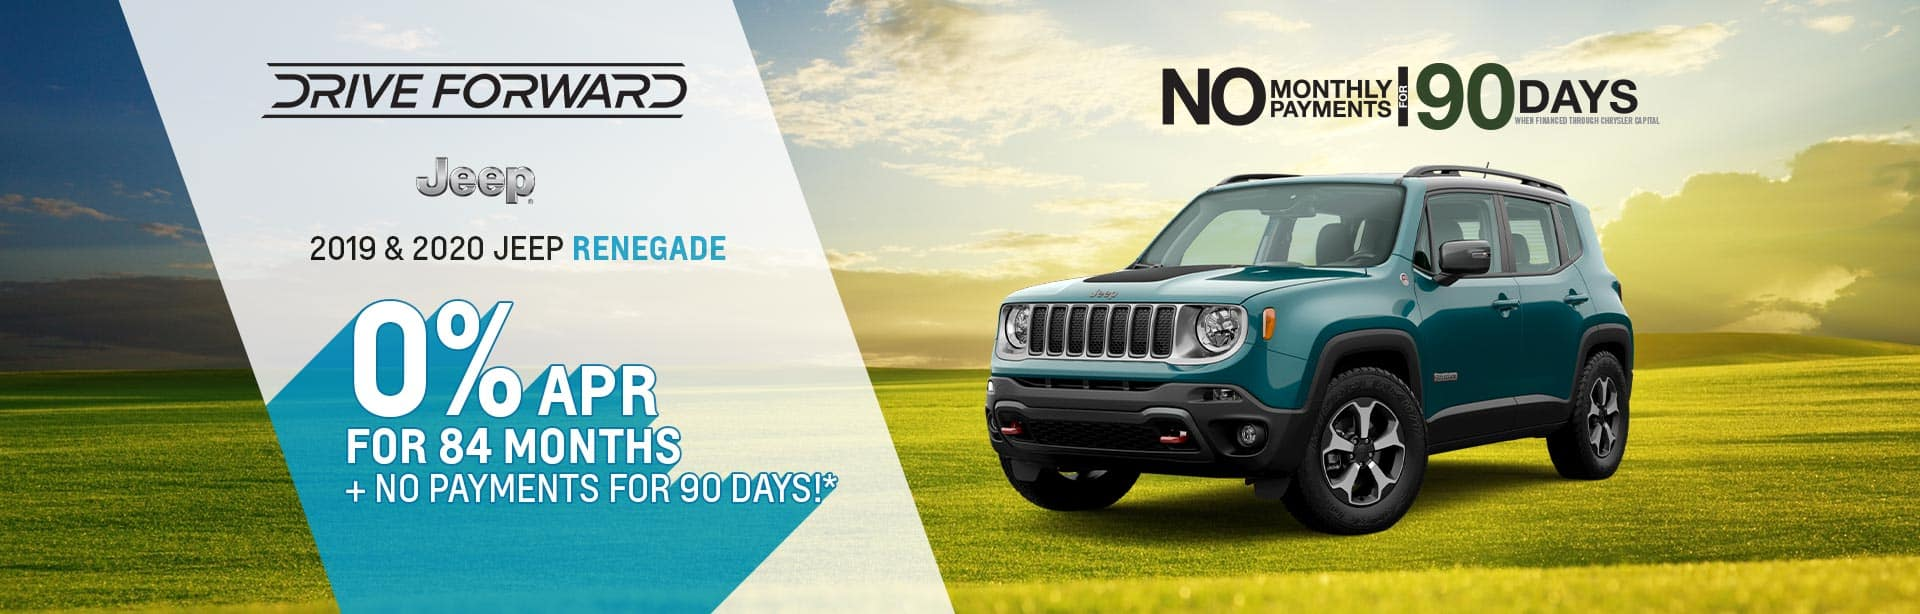 Financee a New Jeep Renegade for 0% near Lebanon, Indiana